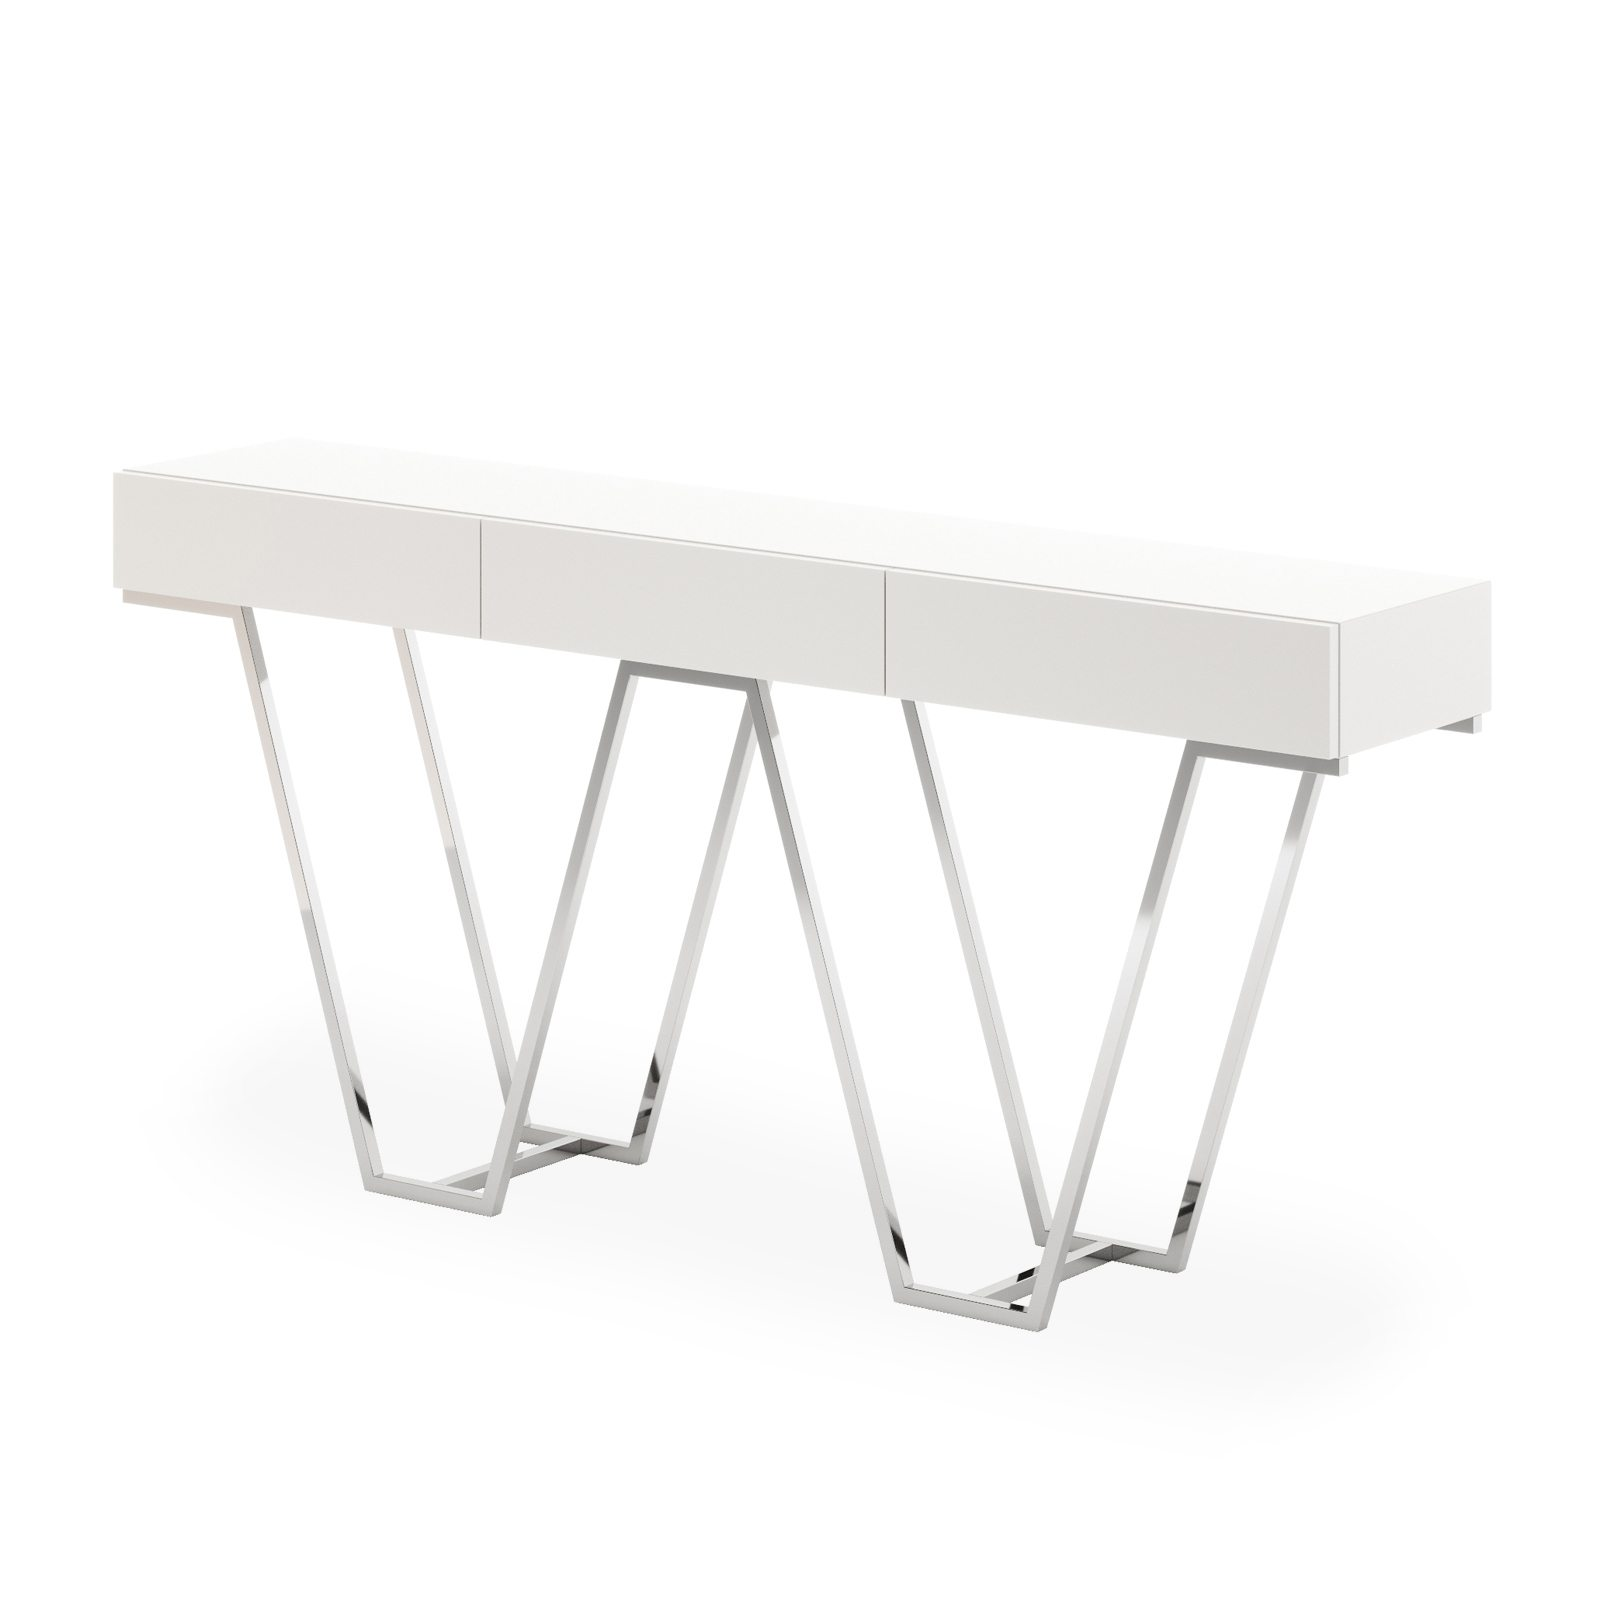 Ventura-Console-White-&-Chrome-by-Bonham-&-Bonham-02